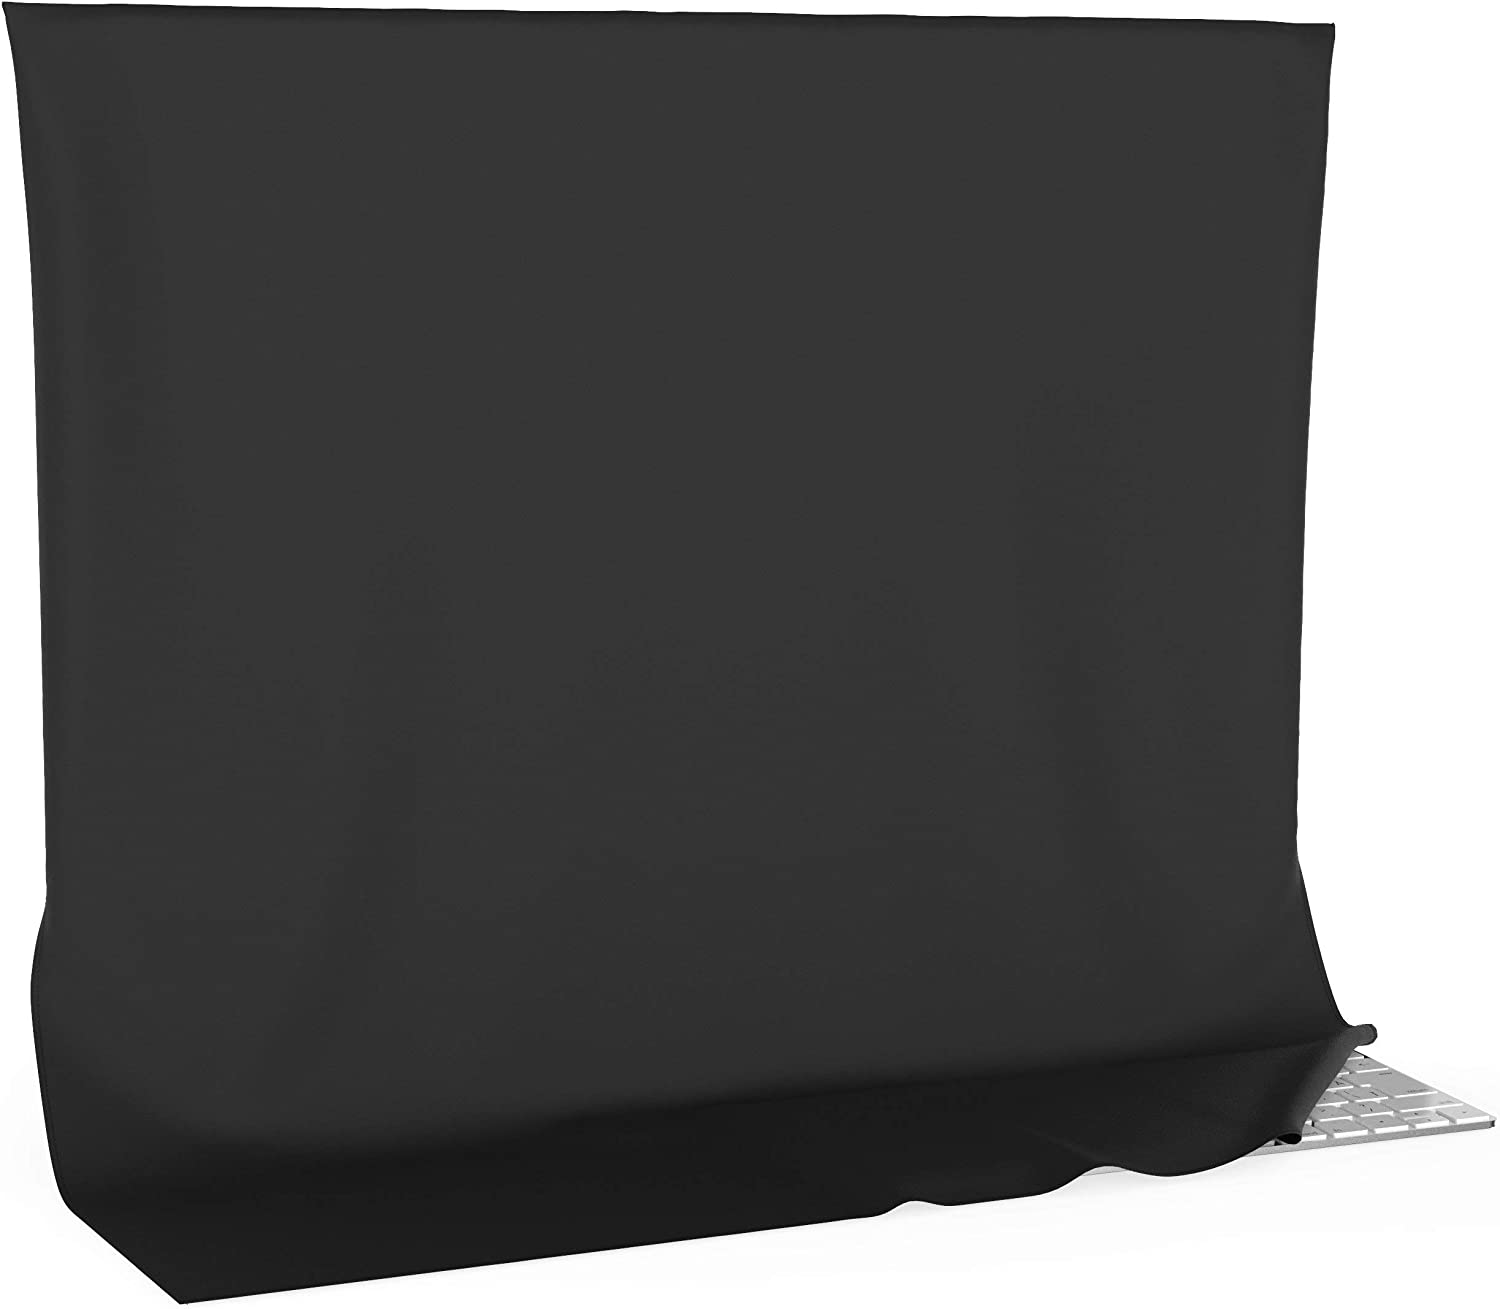 Kuzy iMac 27 inch Cover, Screen and Dust Protector Full Cover for Apple iMac 27 inch Ultrawide Flat Screen Desktop Computer Monitor A1862 A1419 A1312 A1316 A1407 - Black